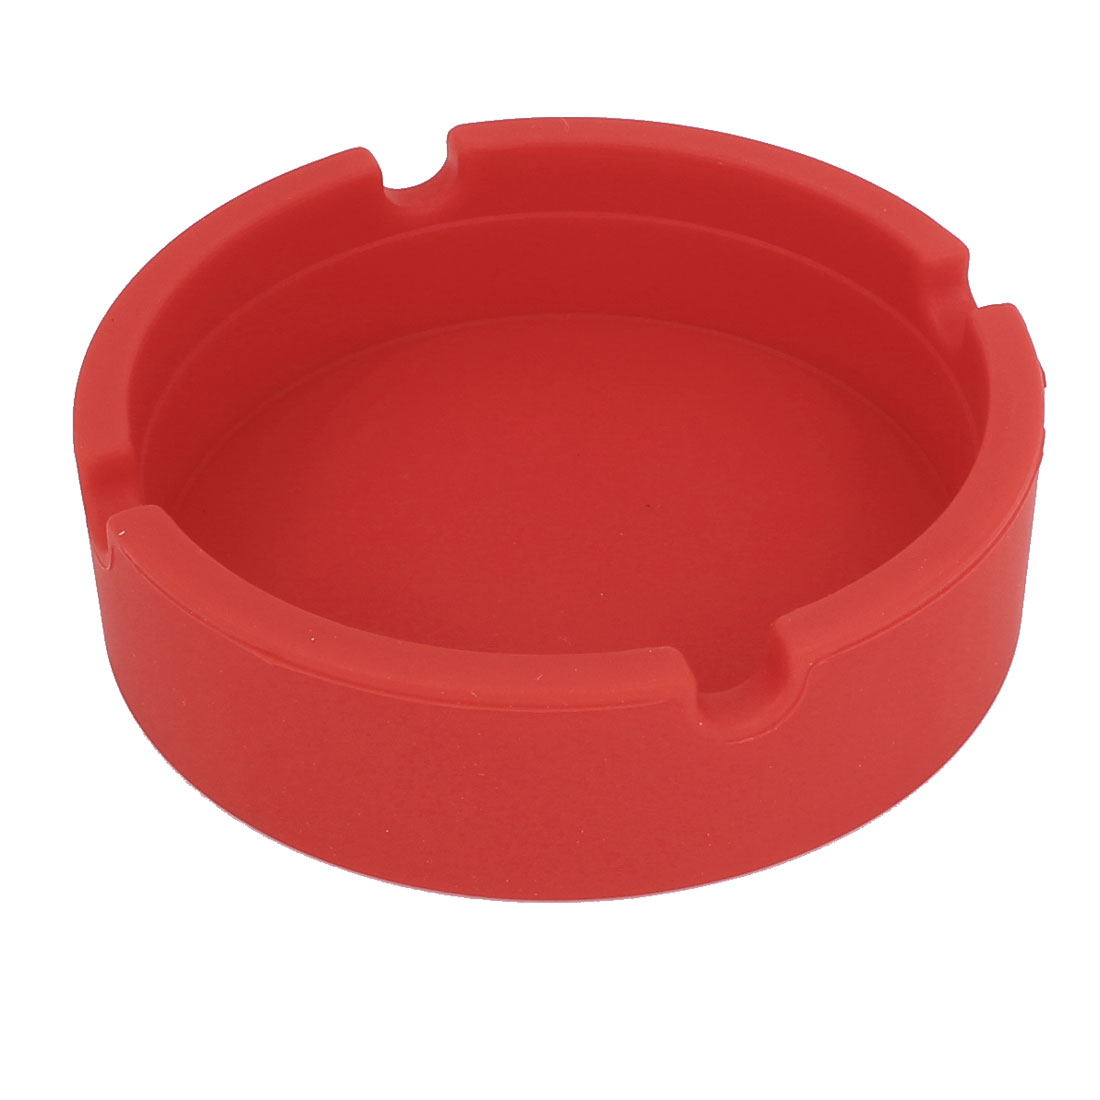 Home Red Silicone Juice Wine Bottle Coffee Cup Coaster Container